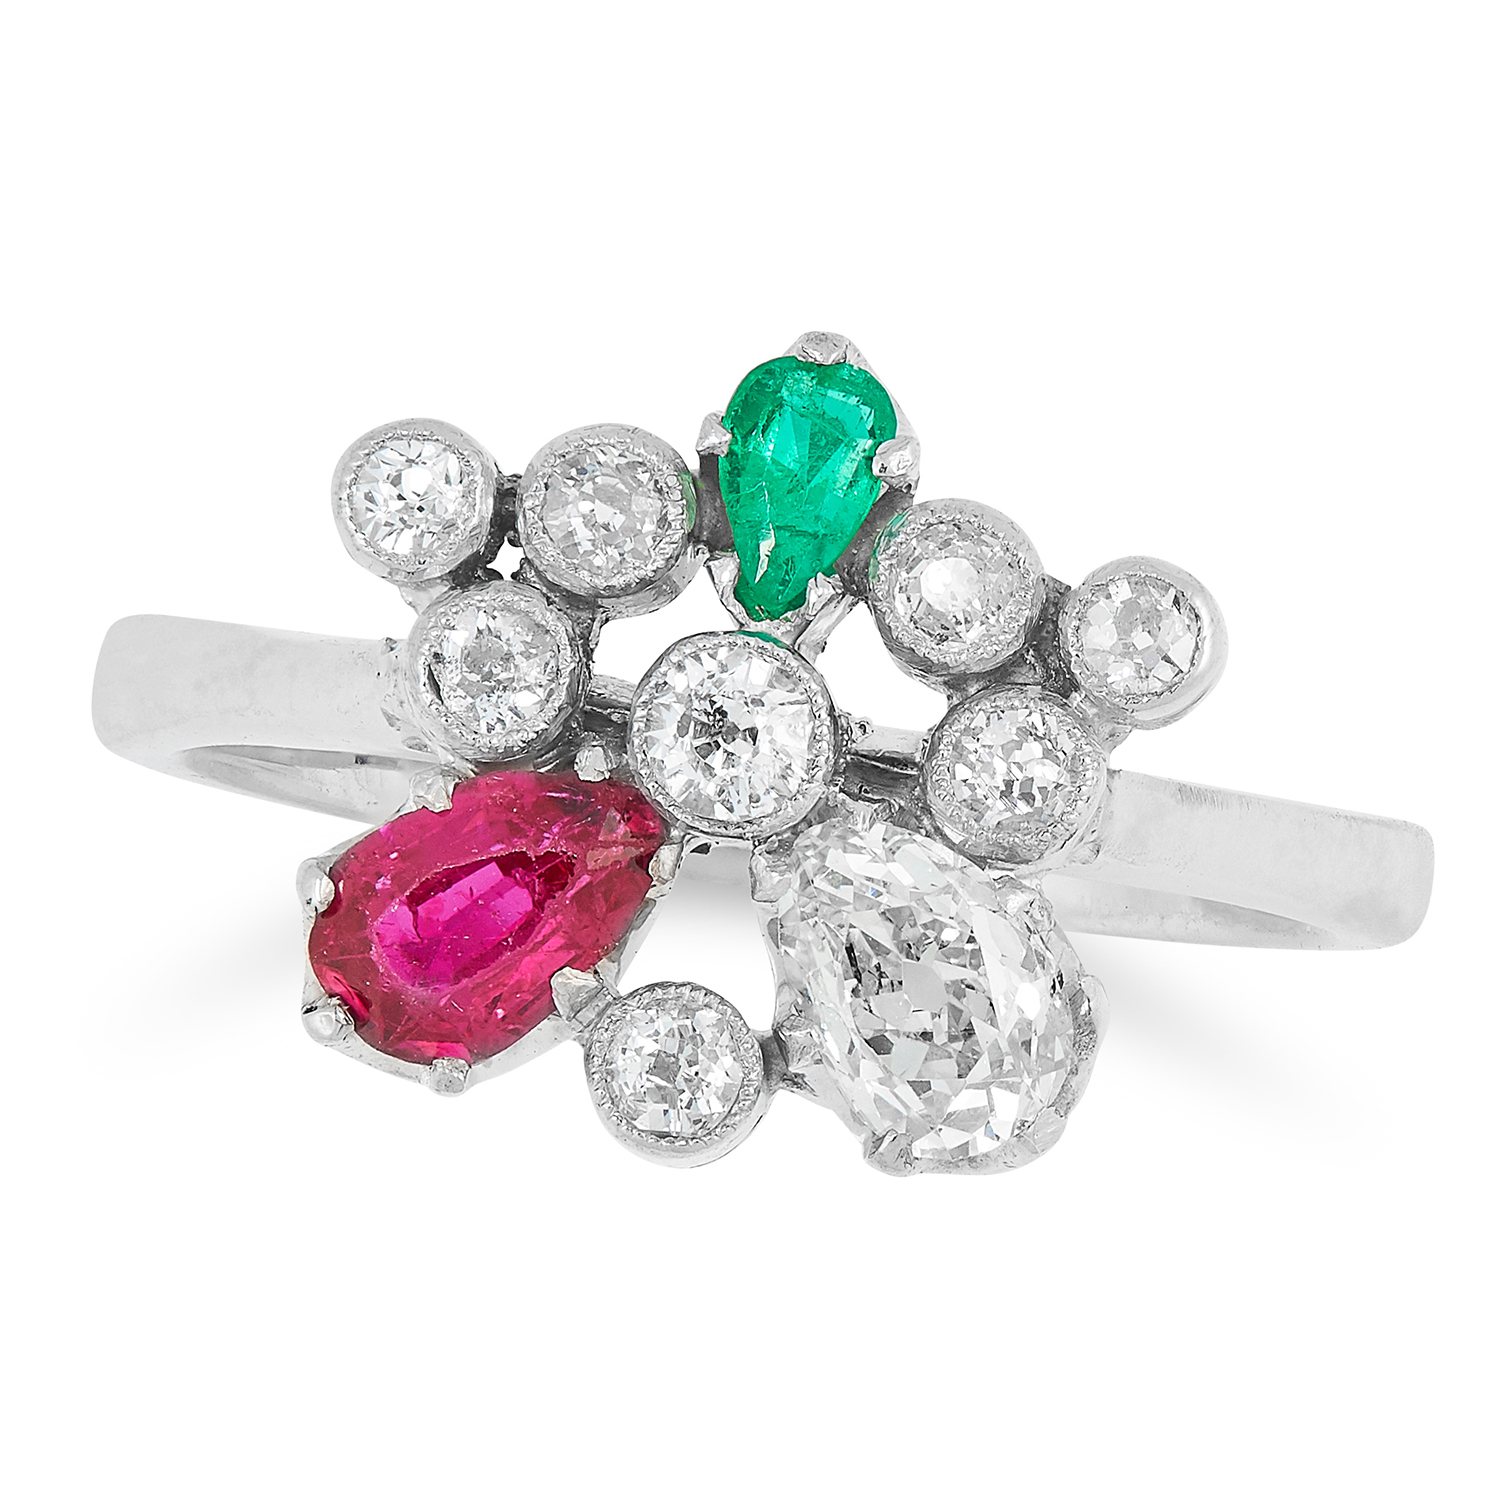 A DIAMOND, RUBY AND EMERALD RING in cluster form set with round cut diamonds and a pear cut ruby,